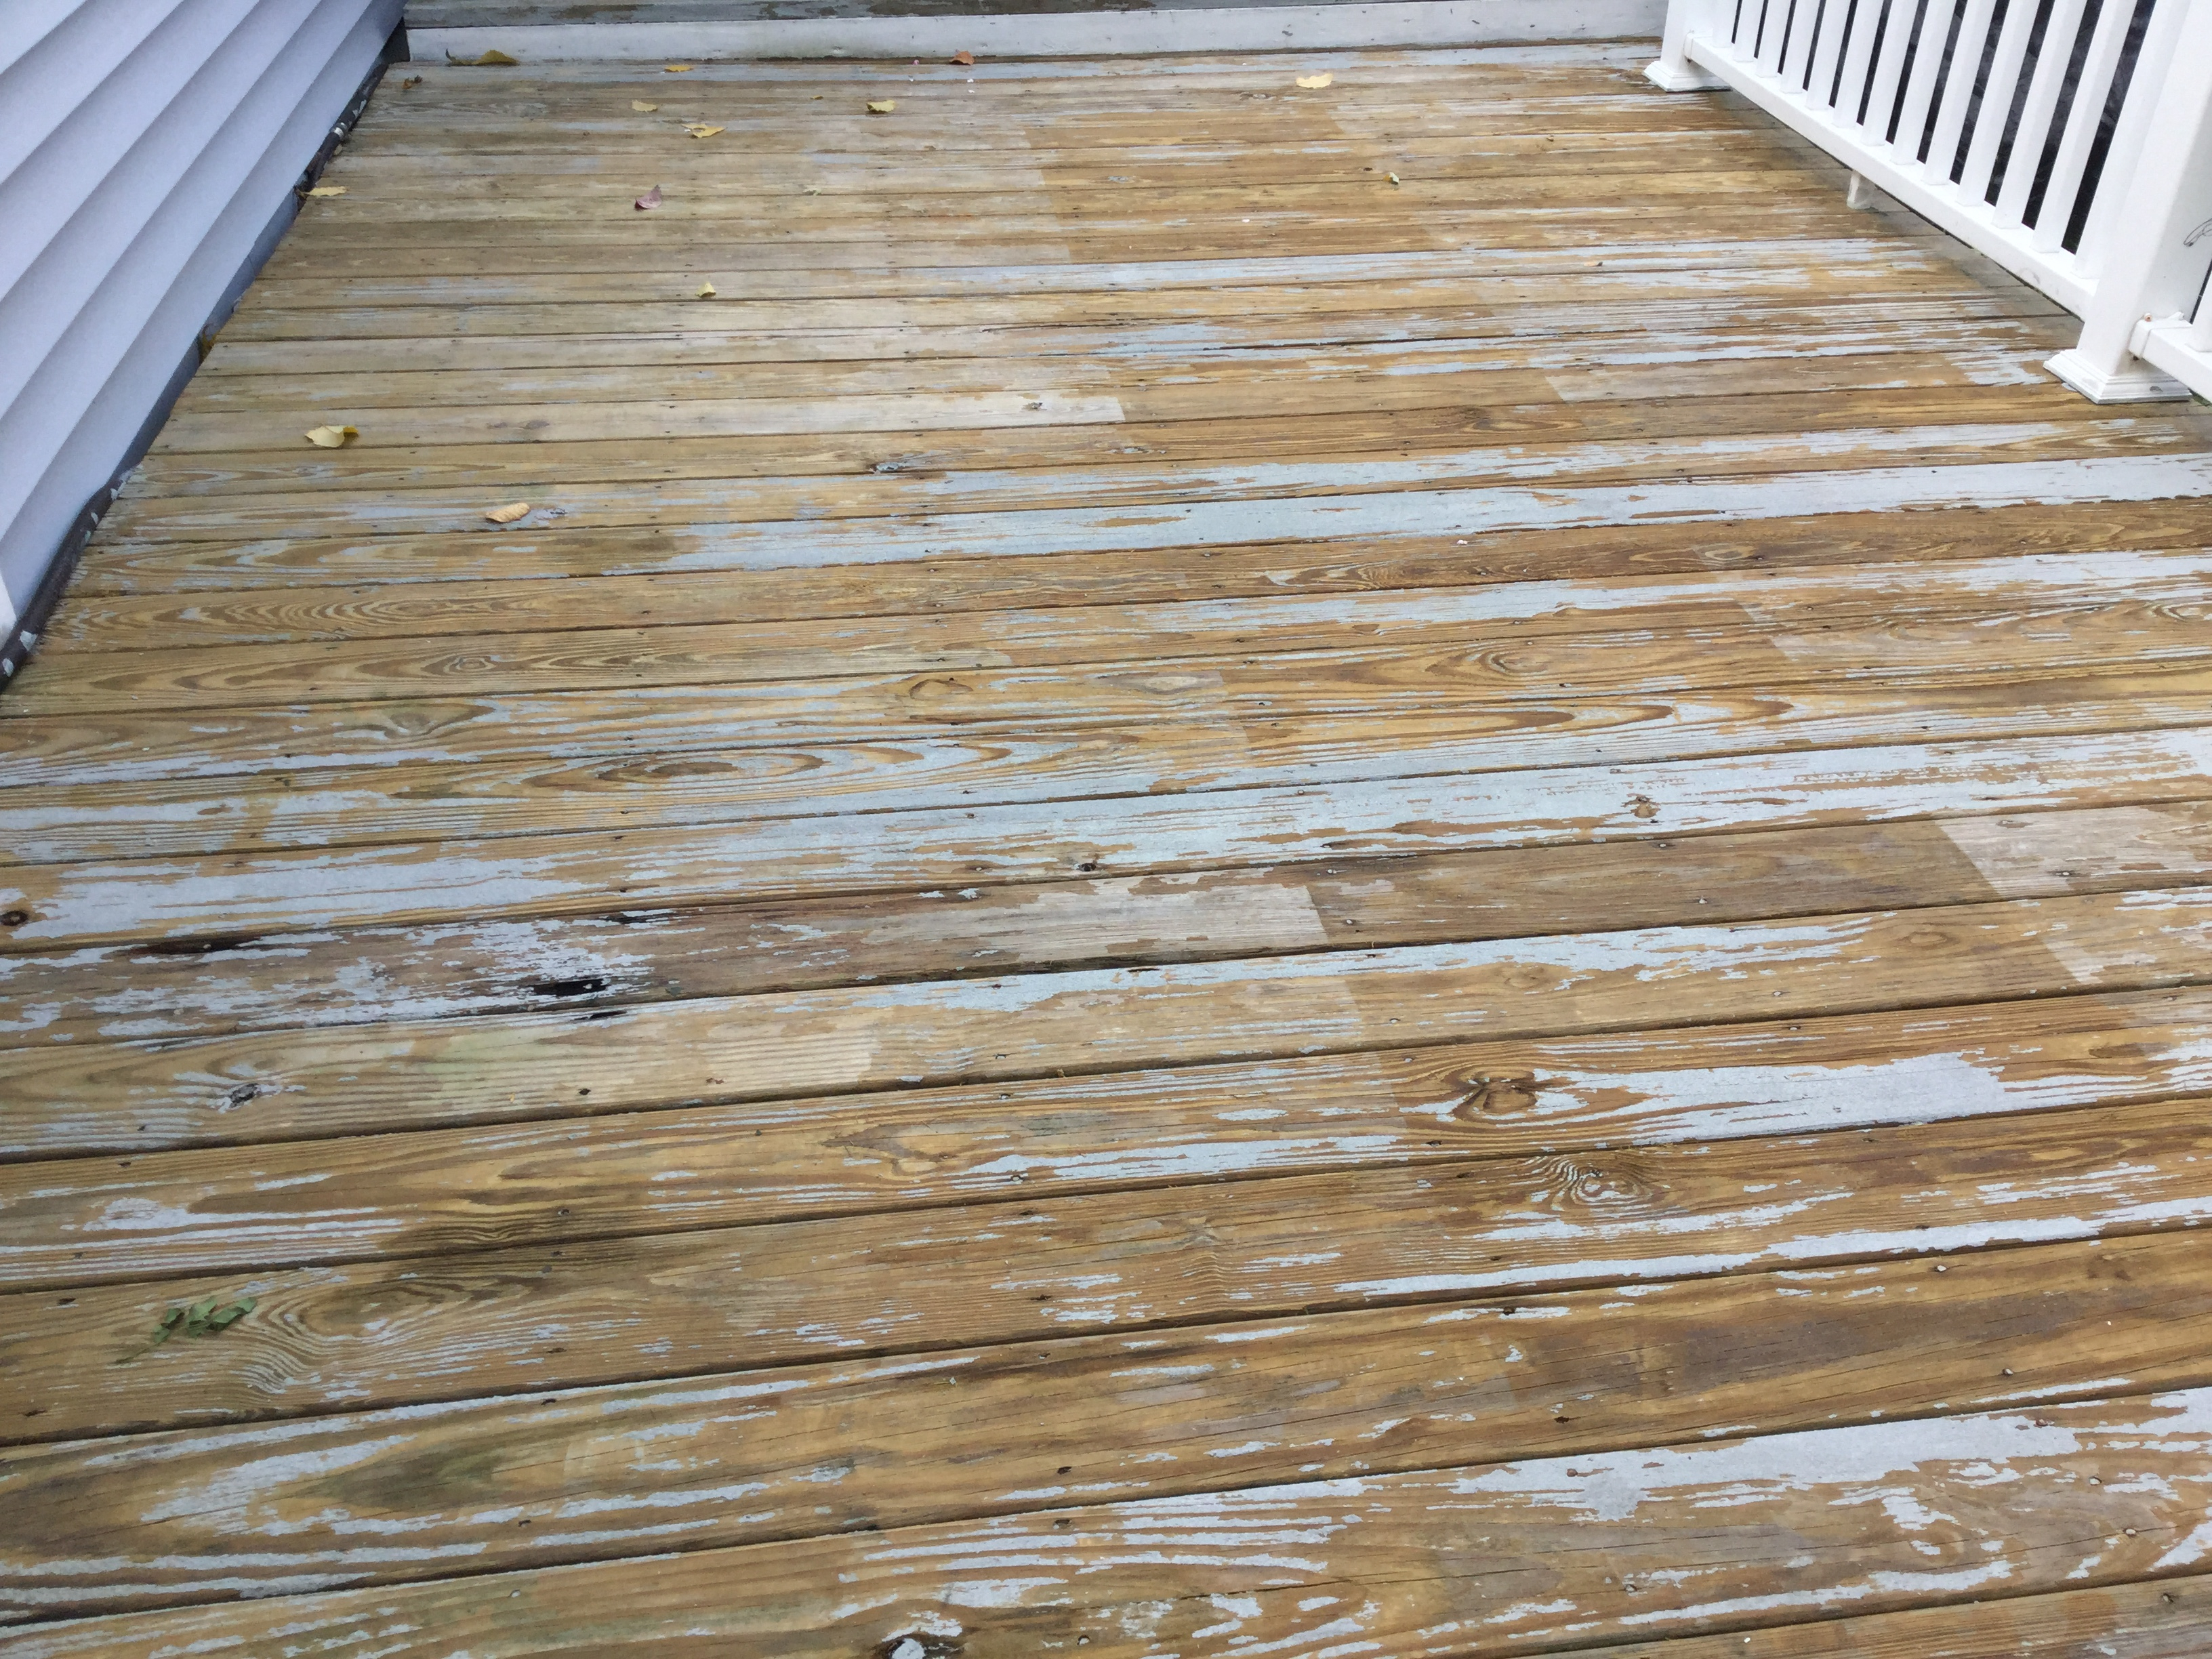 Behr Deckover Olympic Rescue It Rust Oleum Deck Restore Do They inside dimensions 3264 X 2448